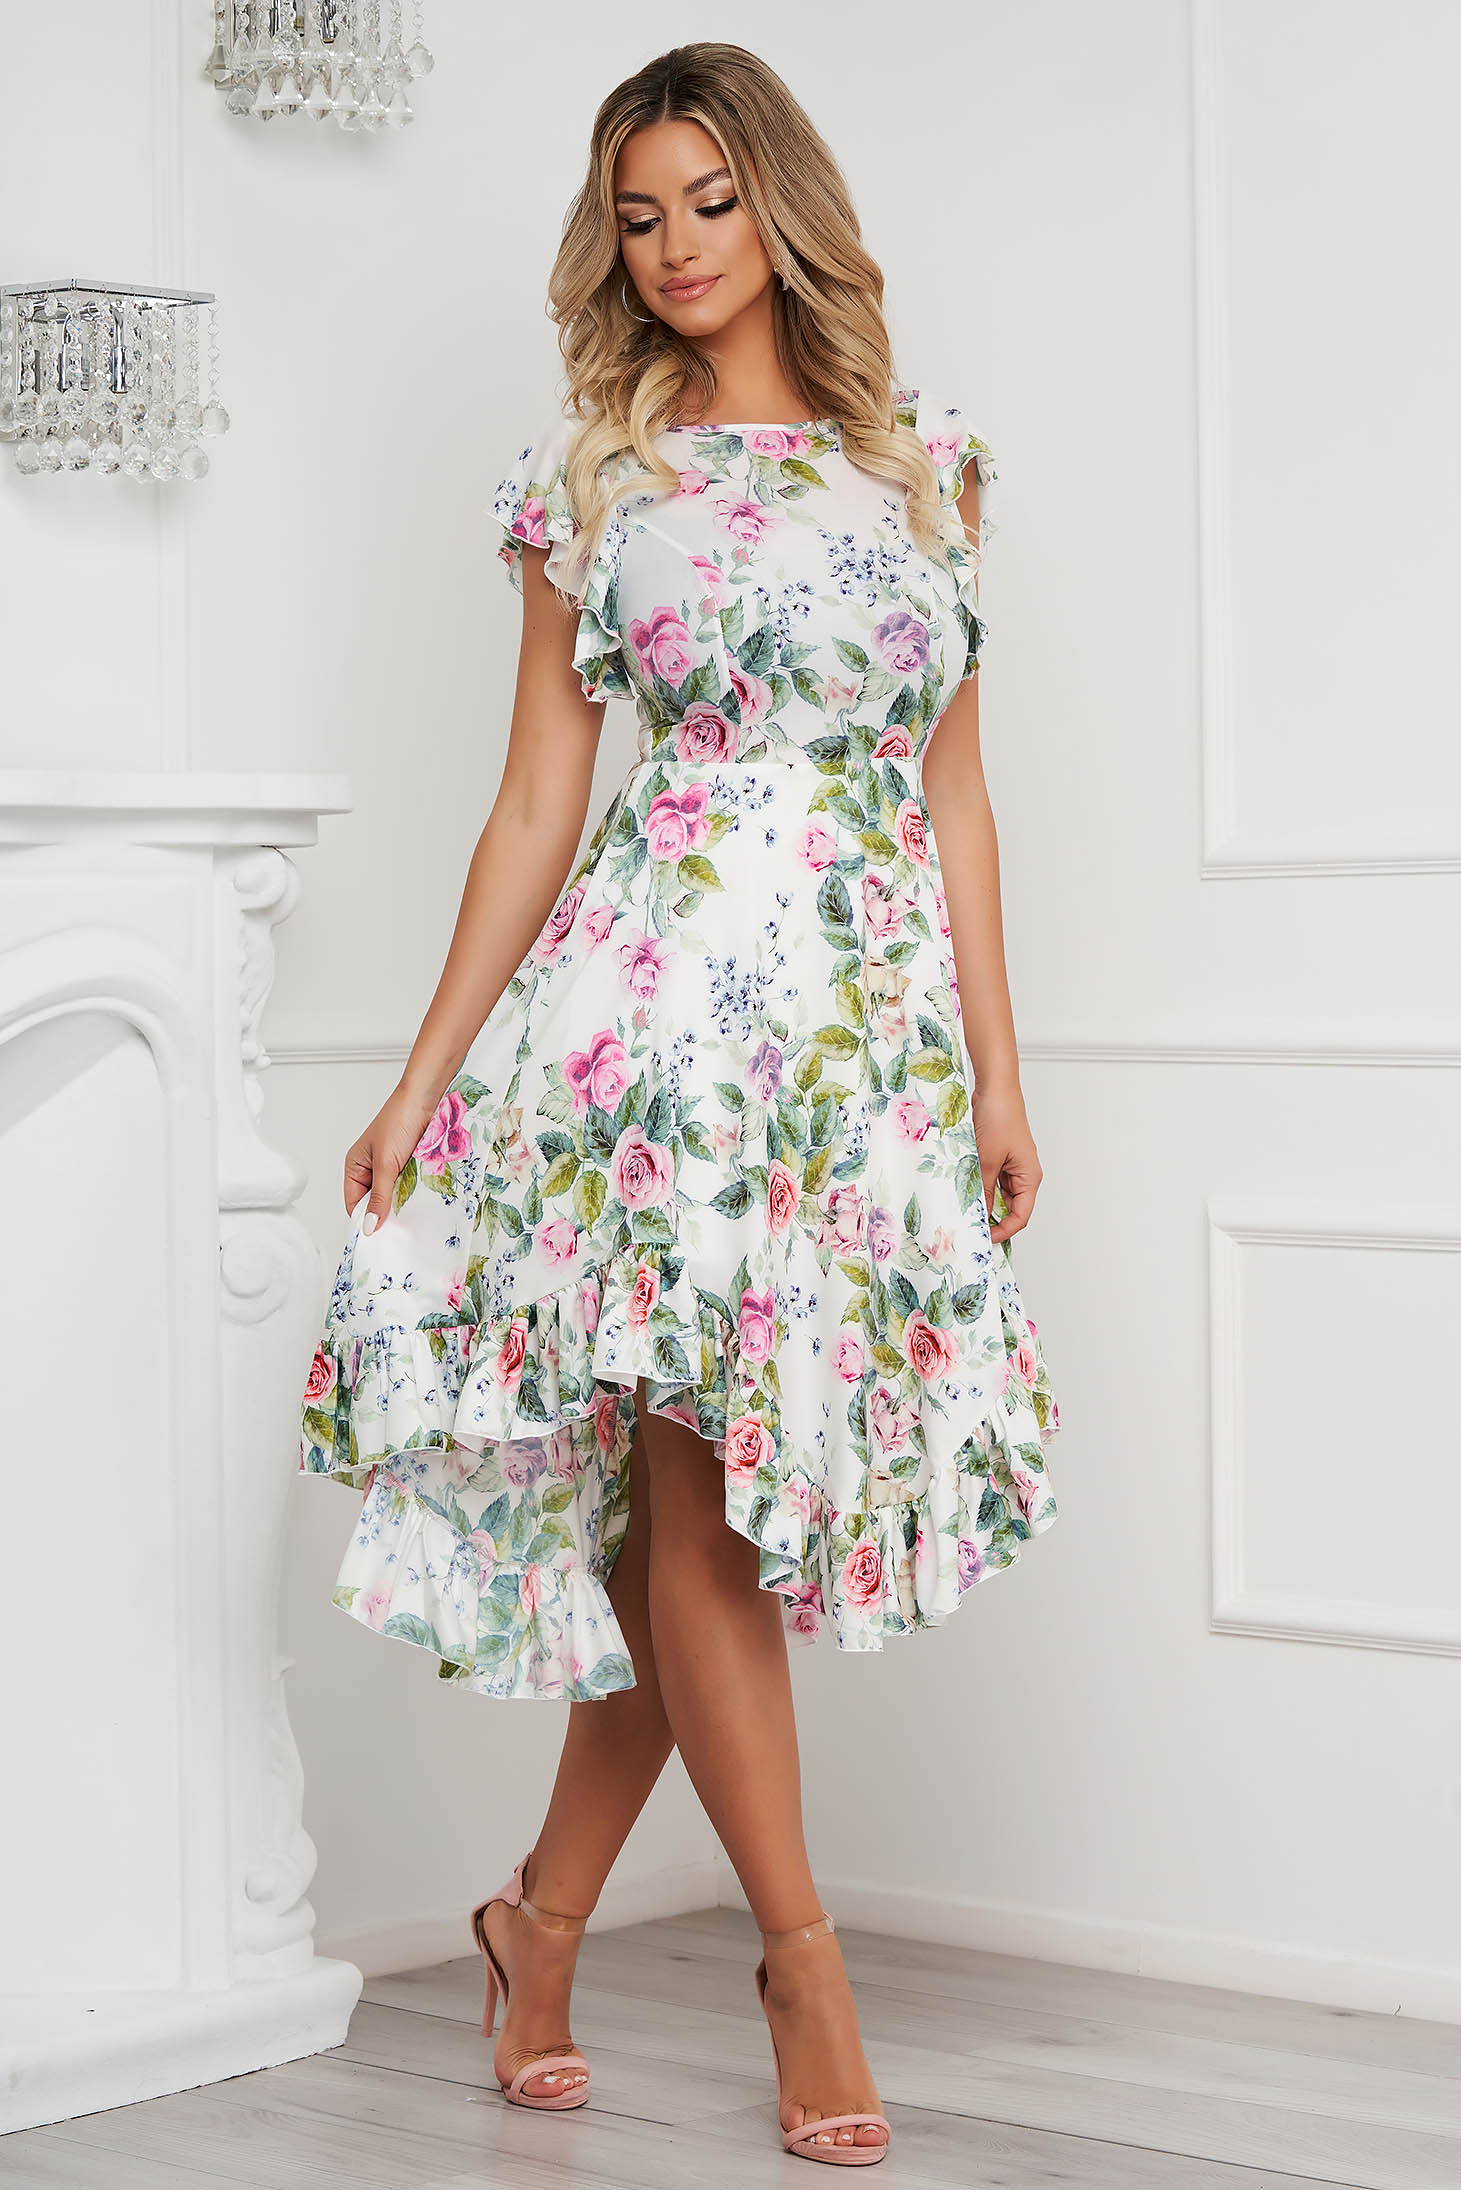 StarShinerS dress midi cloche with ruffle details from soft fabric asymmetrical